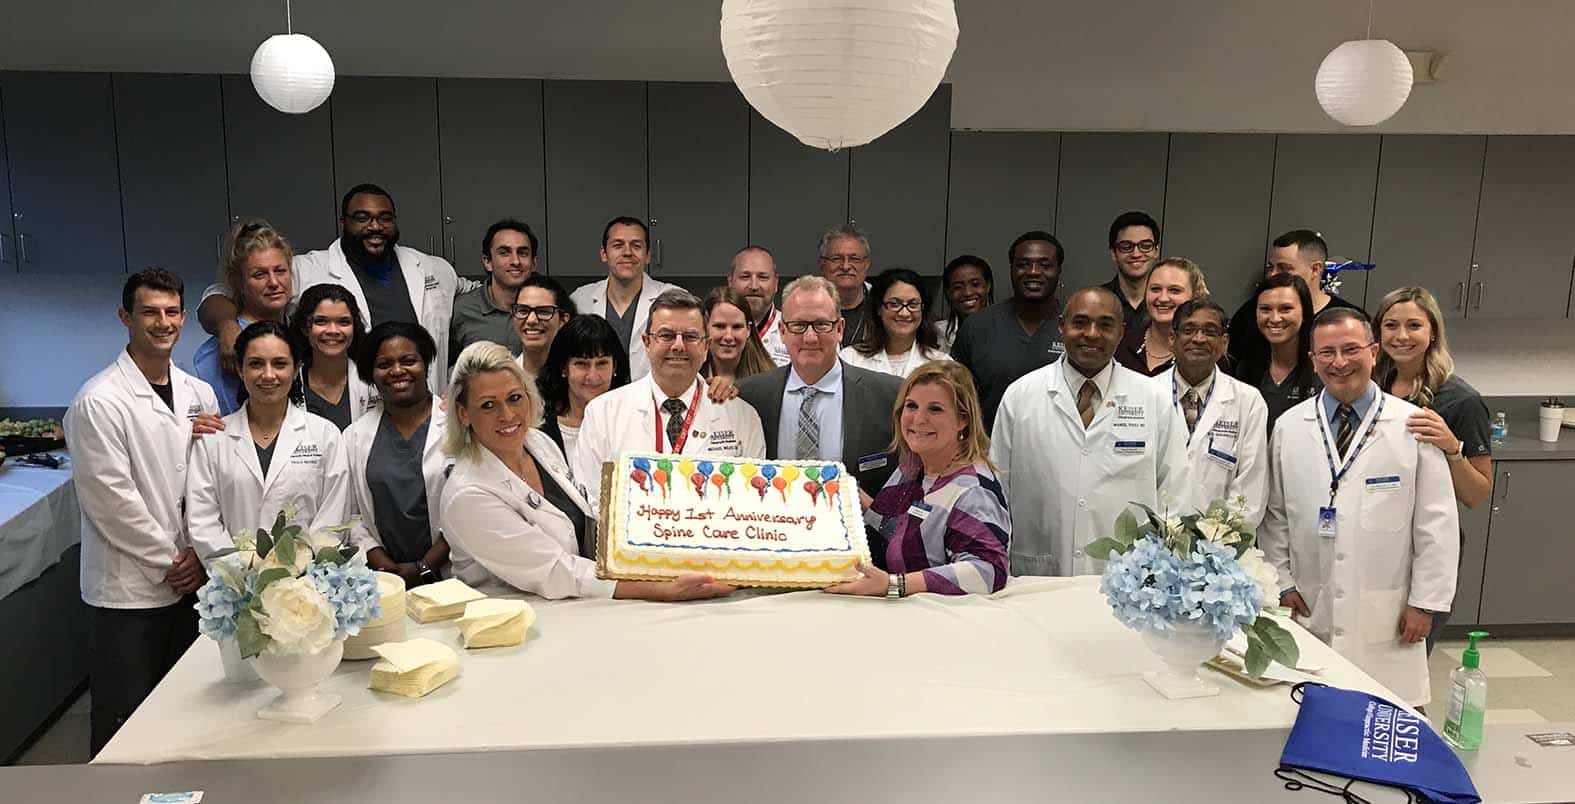 Keiser University Spine Care Clinic Celebrates First Anniversary with Open House Program